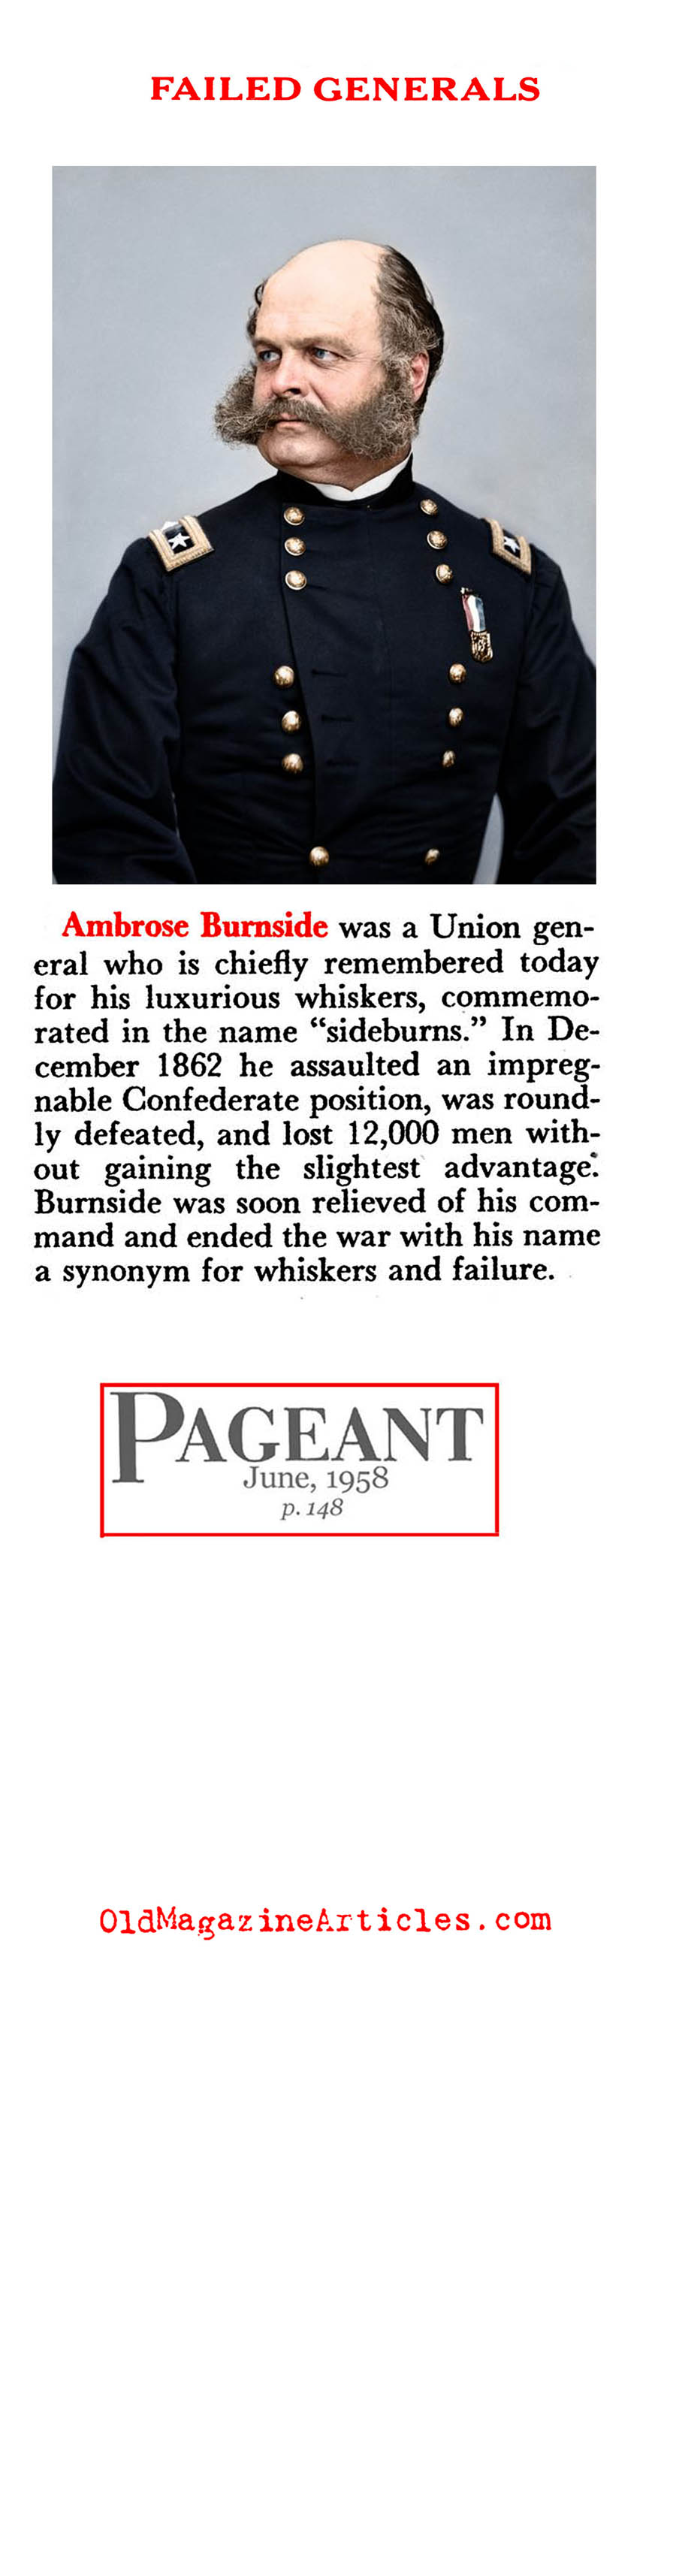 The Bad Generals (Pageant Magazine, 1958)